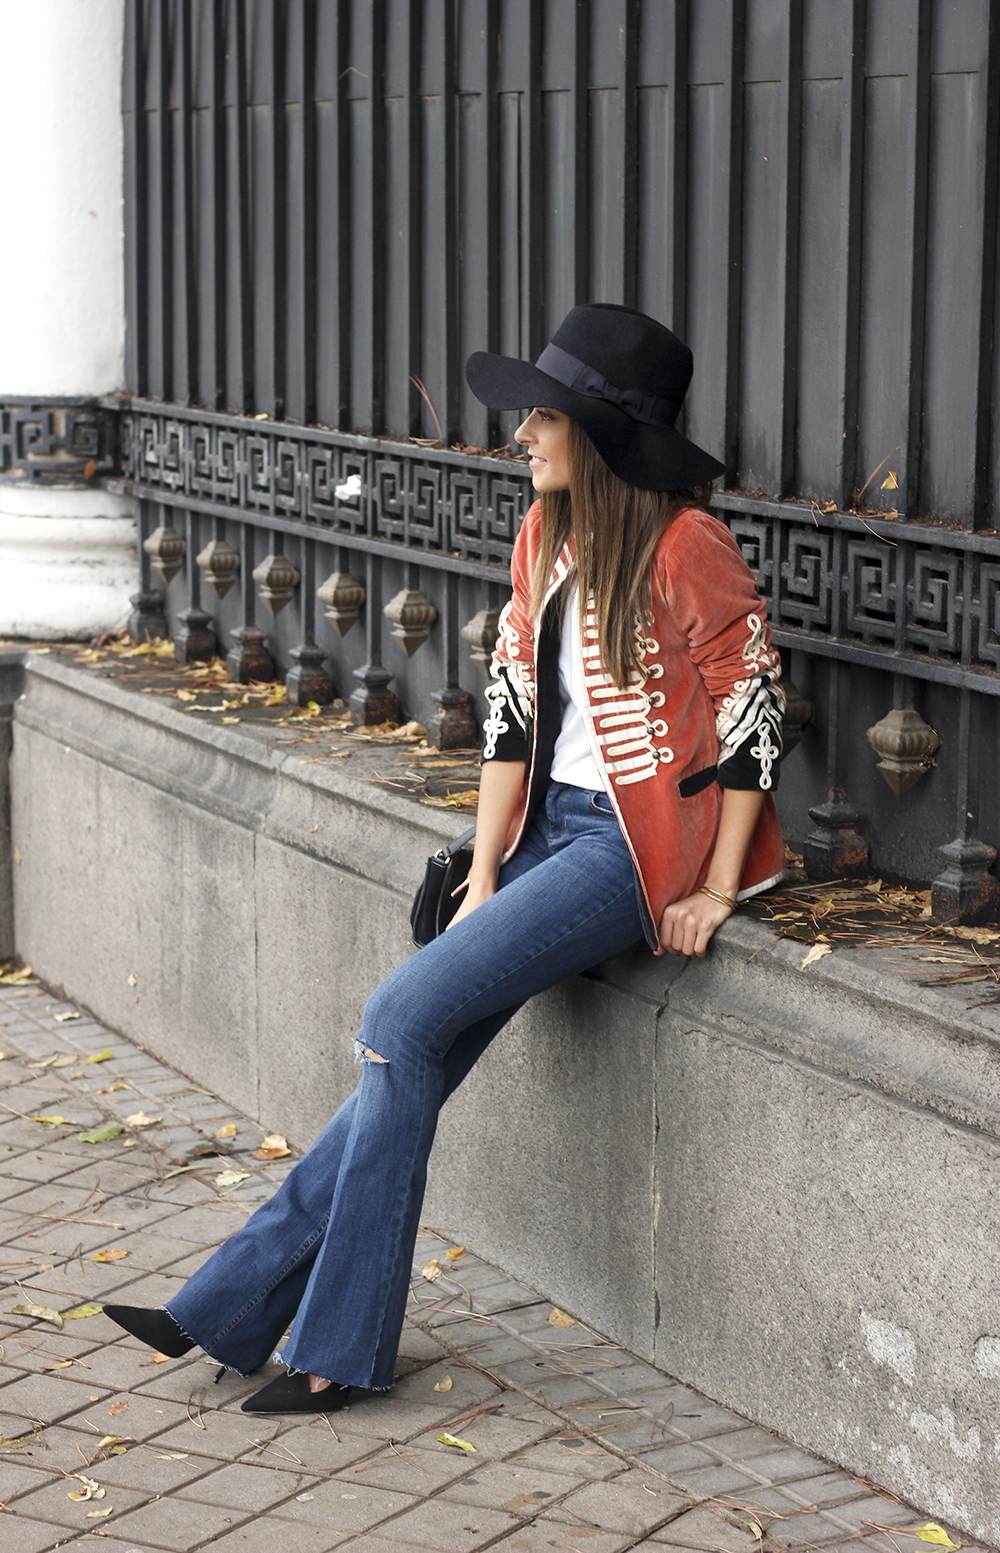 velvet jacket jeans hat rainny day heels accessories outfit style fashion14